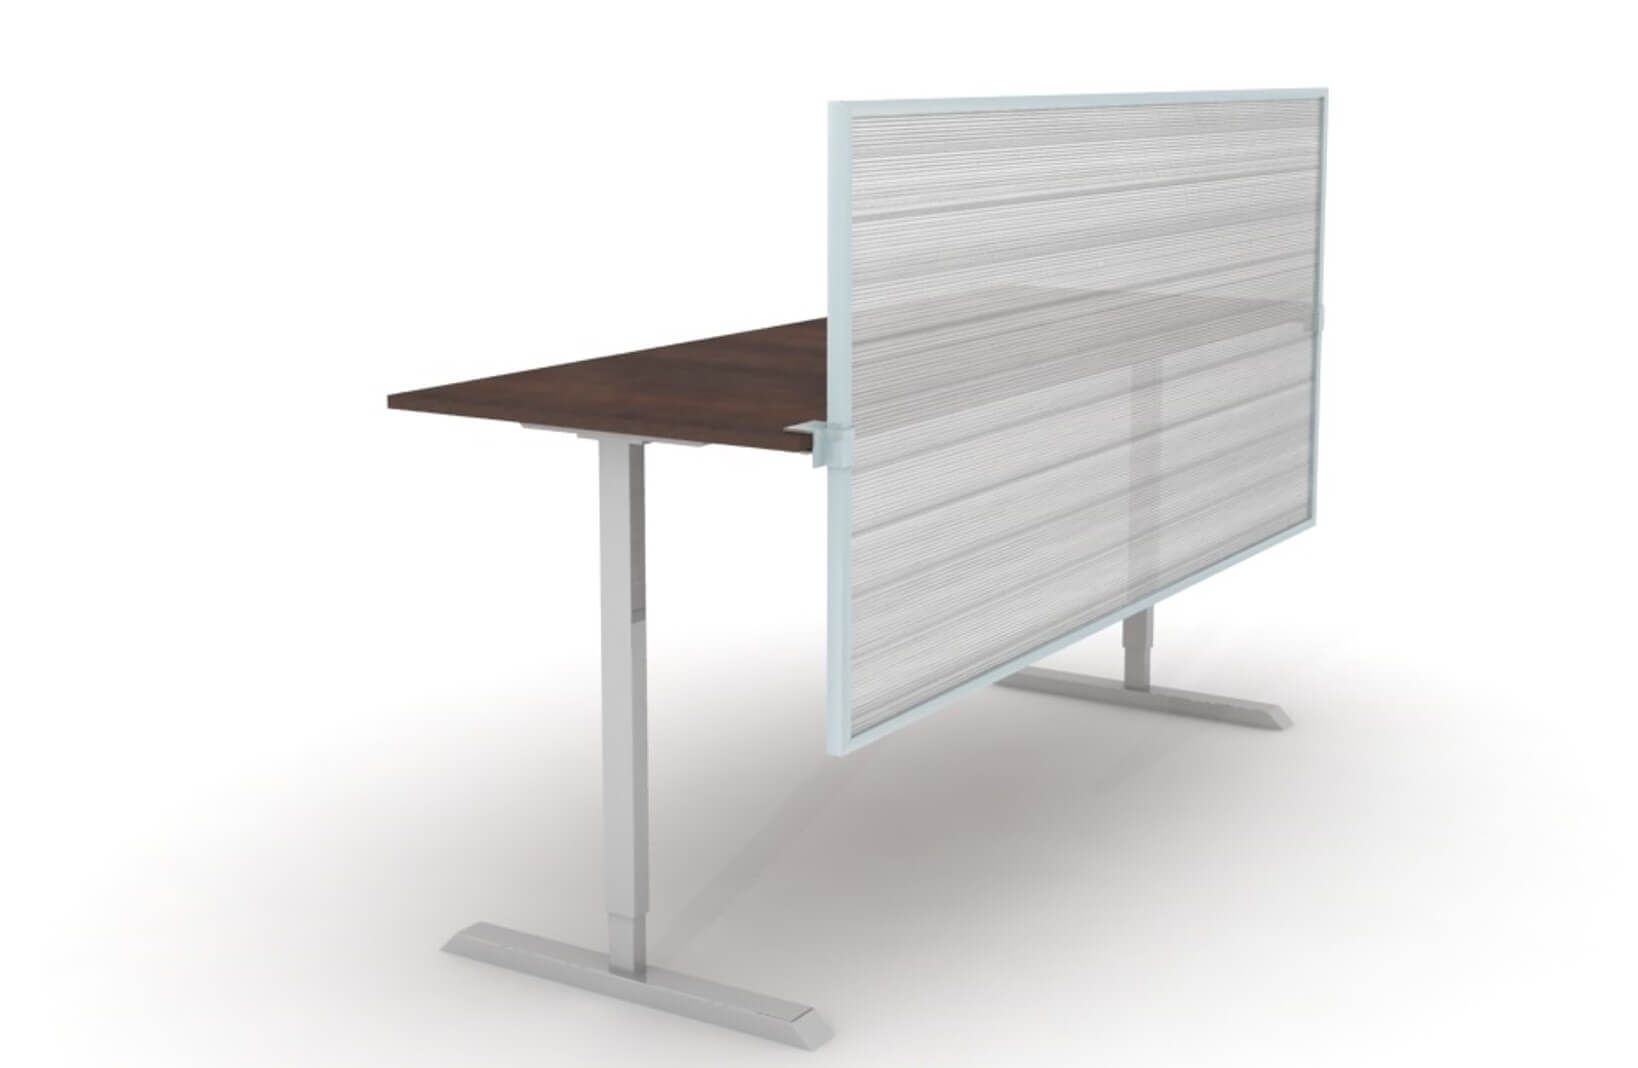 office panels dividers. Beautiful Office Desk Dividers Office Divider Panels 1 2 With Office Panels Dividers